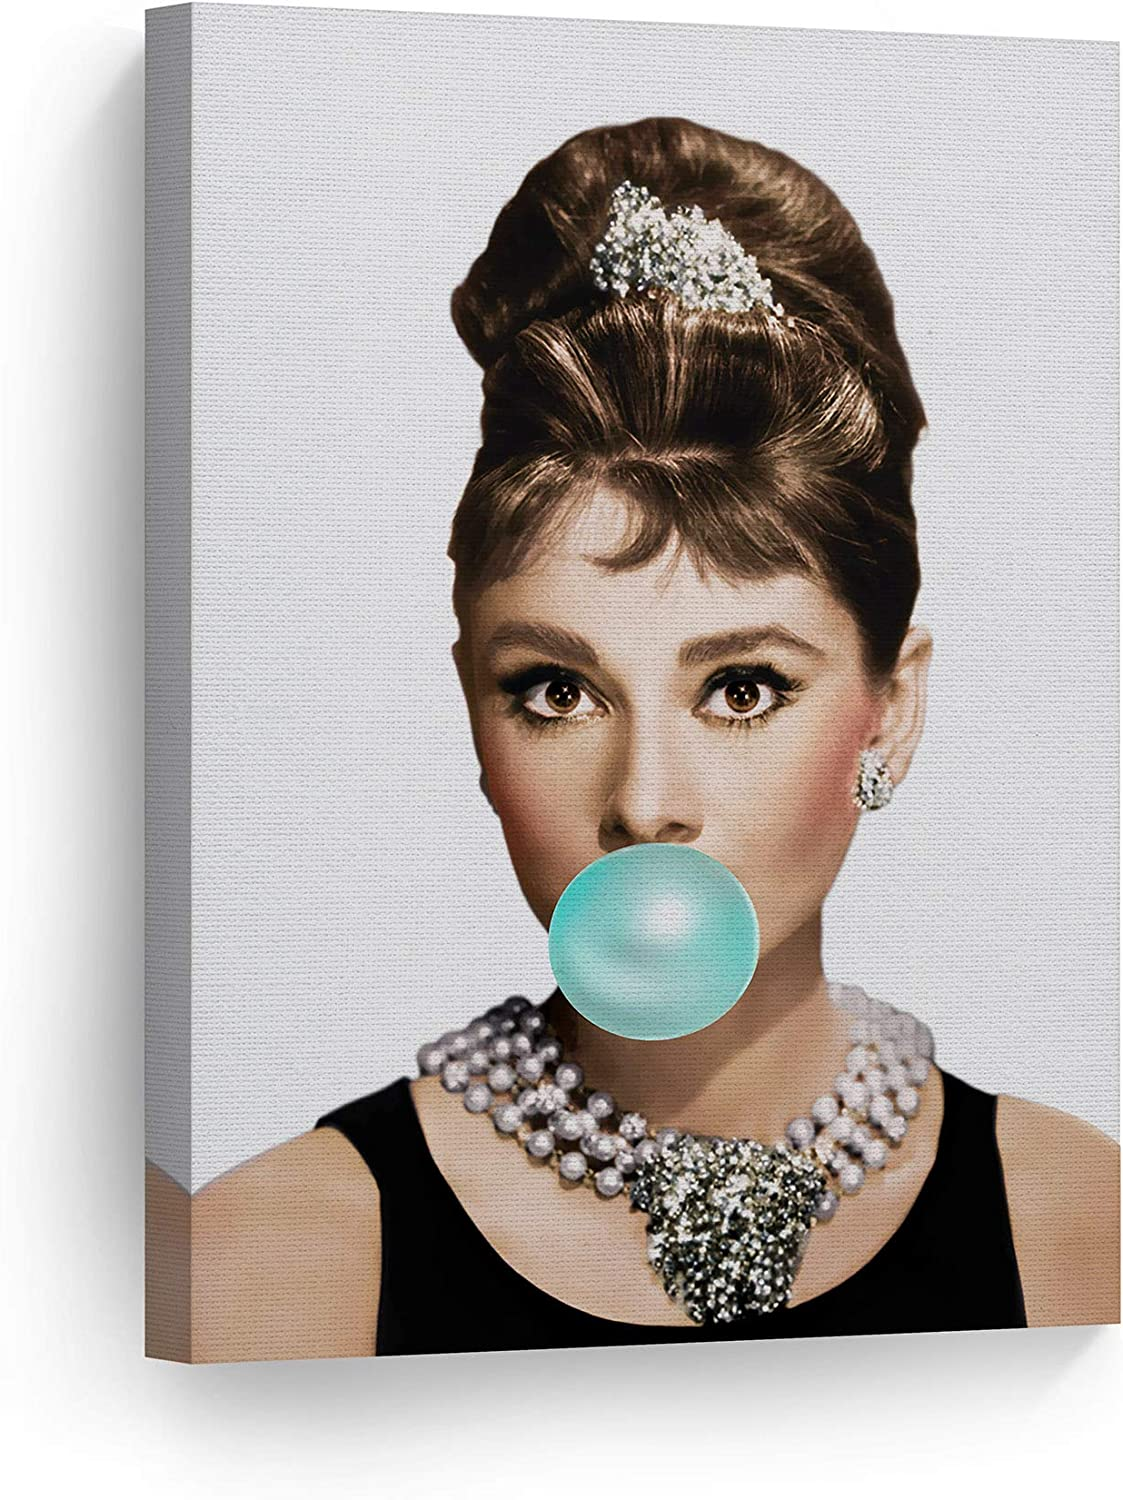 Smile Art Design Audrey Hepburn Bubble Gum Canvas Print Teal Blue Pop Art Home Decor/Iconic Wall Art/Gallery Wrapped Canvas Art Stretched/Ready to Hang (12 x 8)